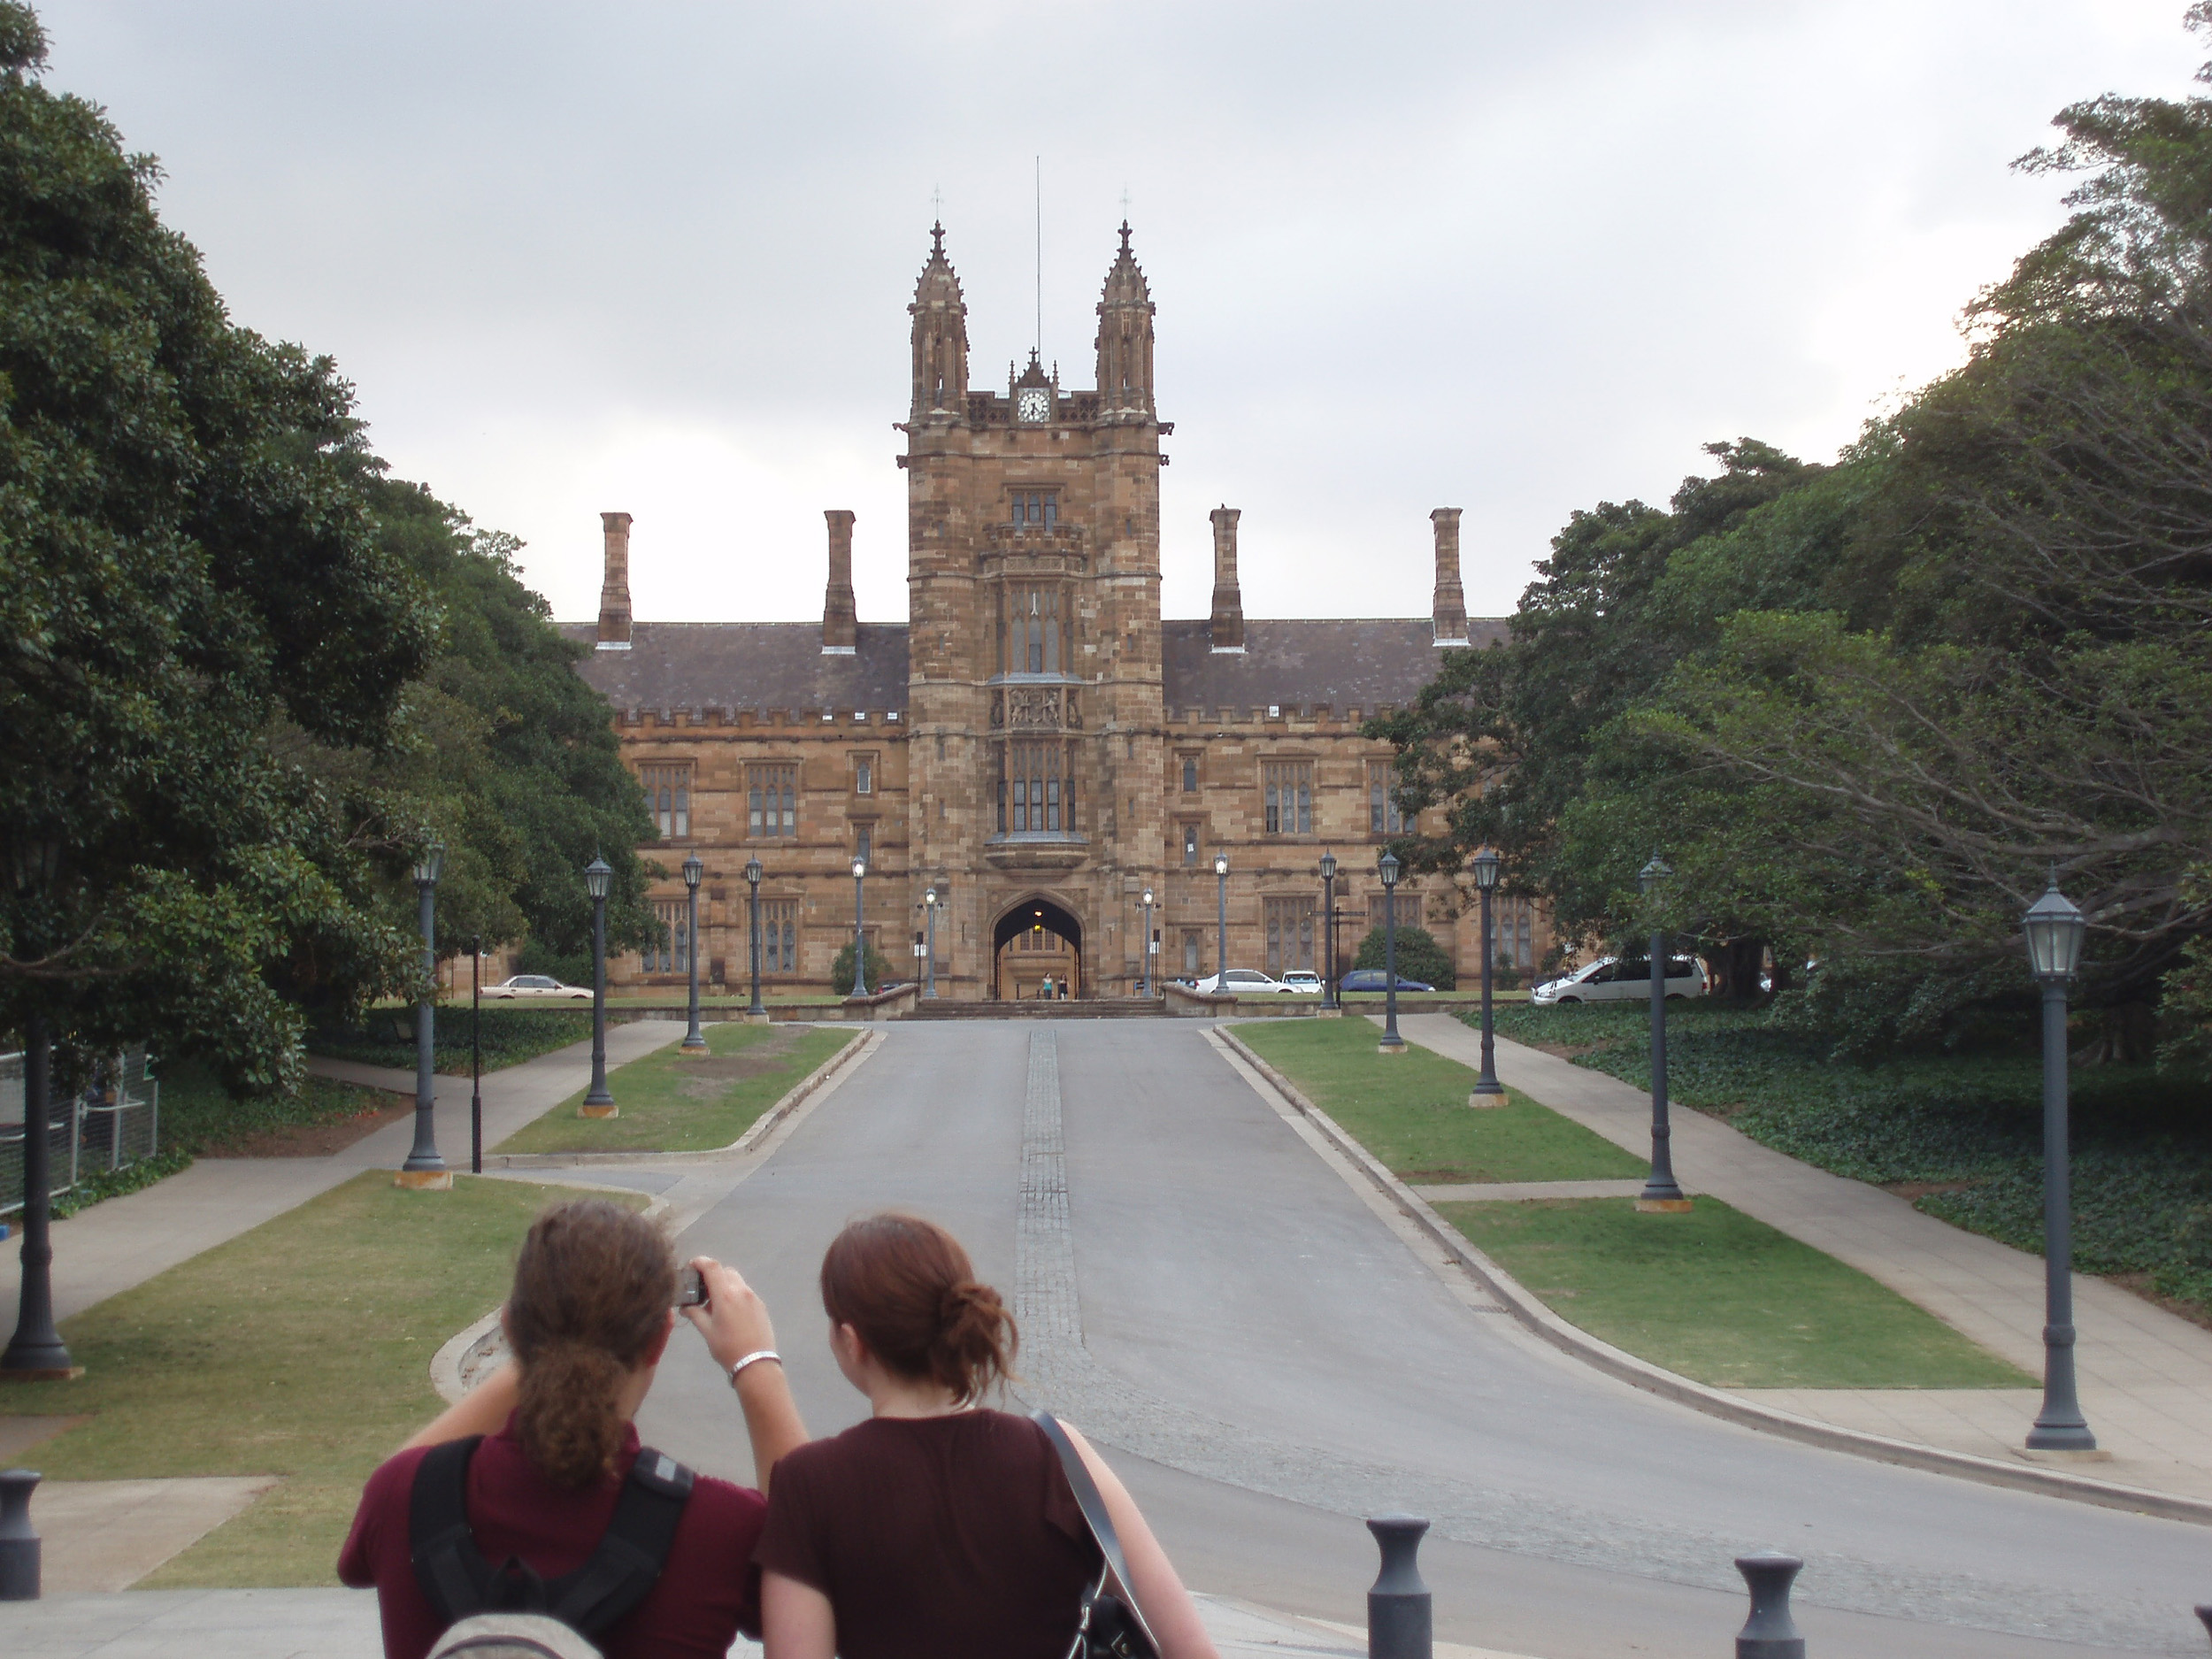 gothic revival buidings of sydney university quadrangle